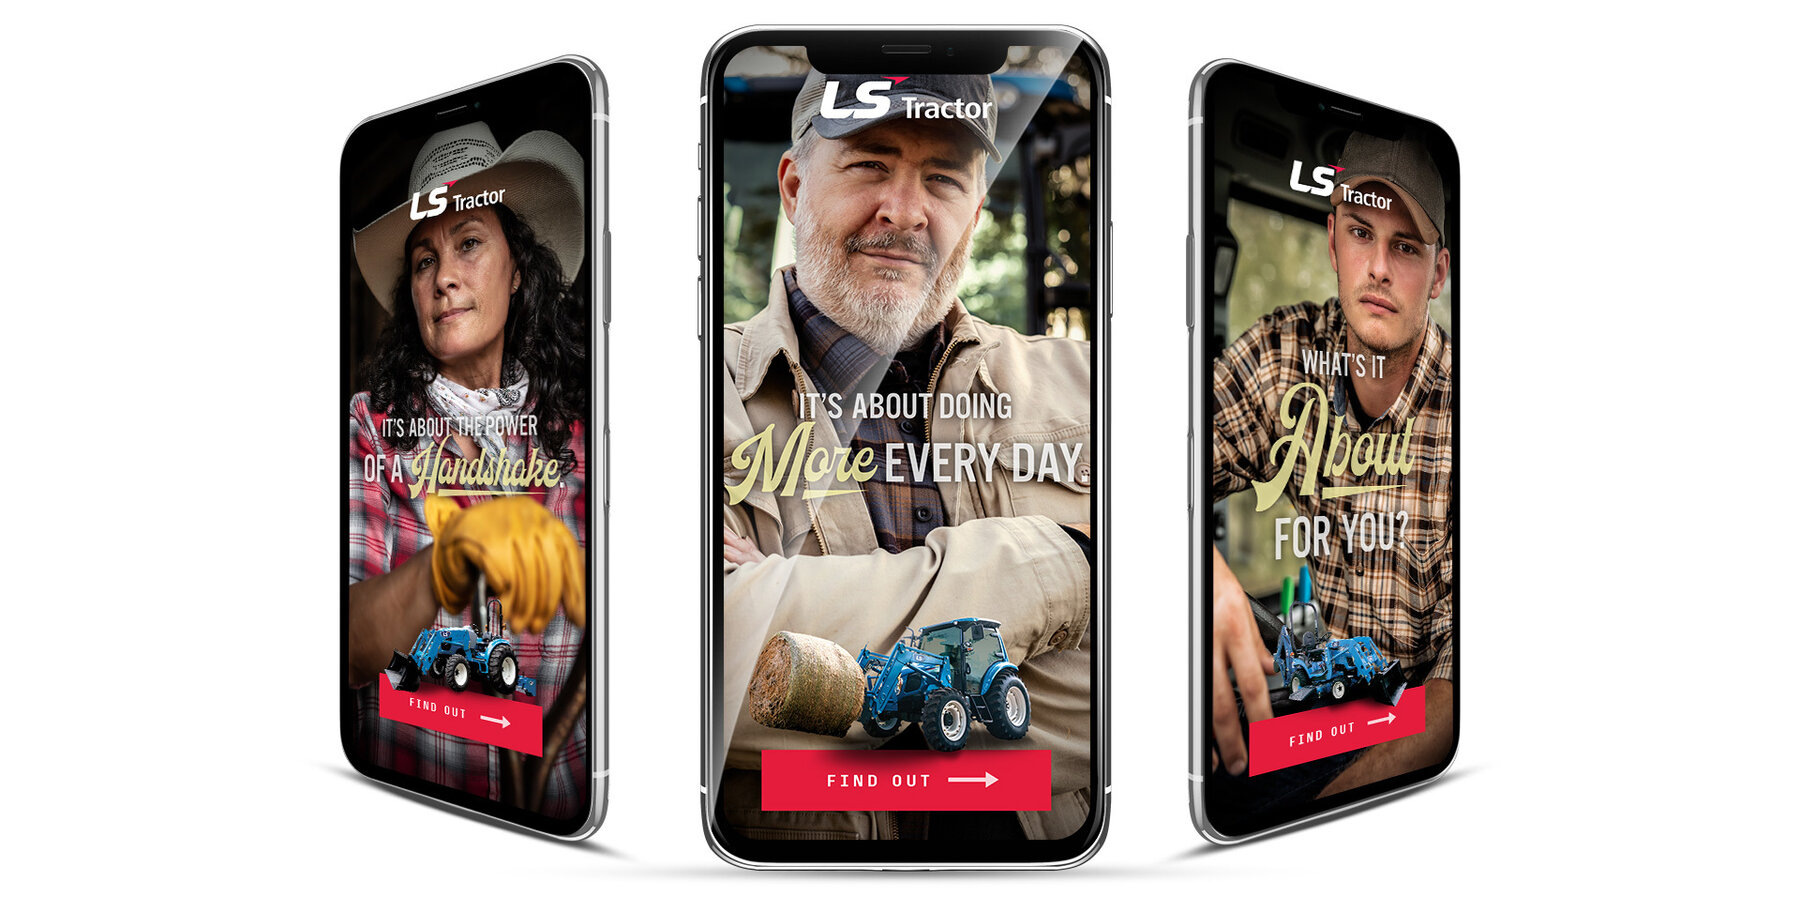 Ls tractor web banners